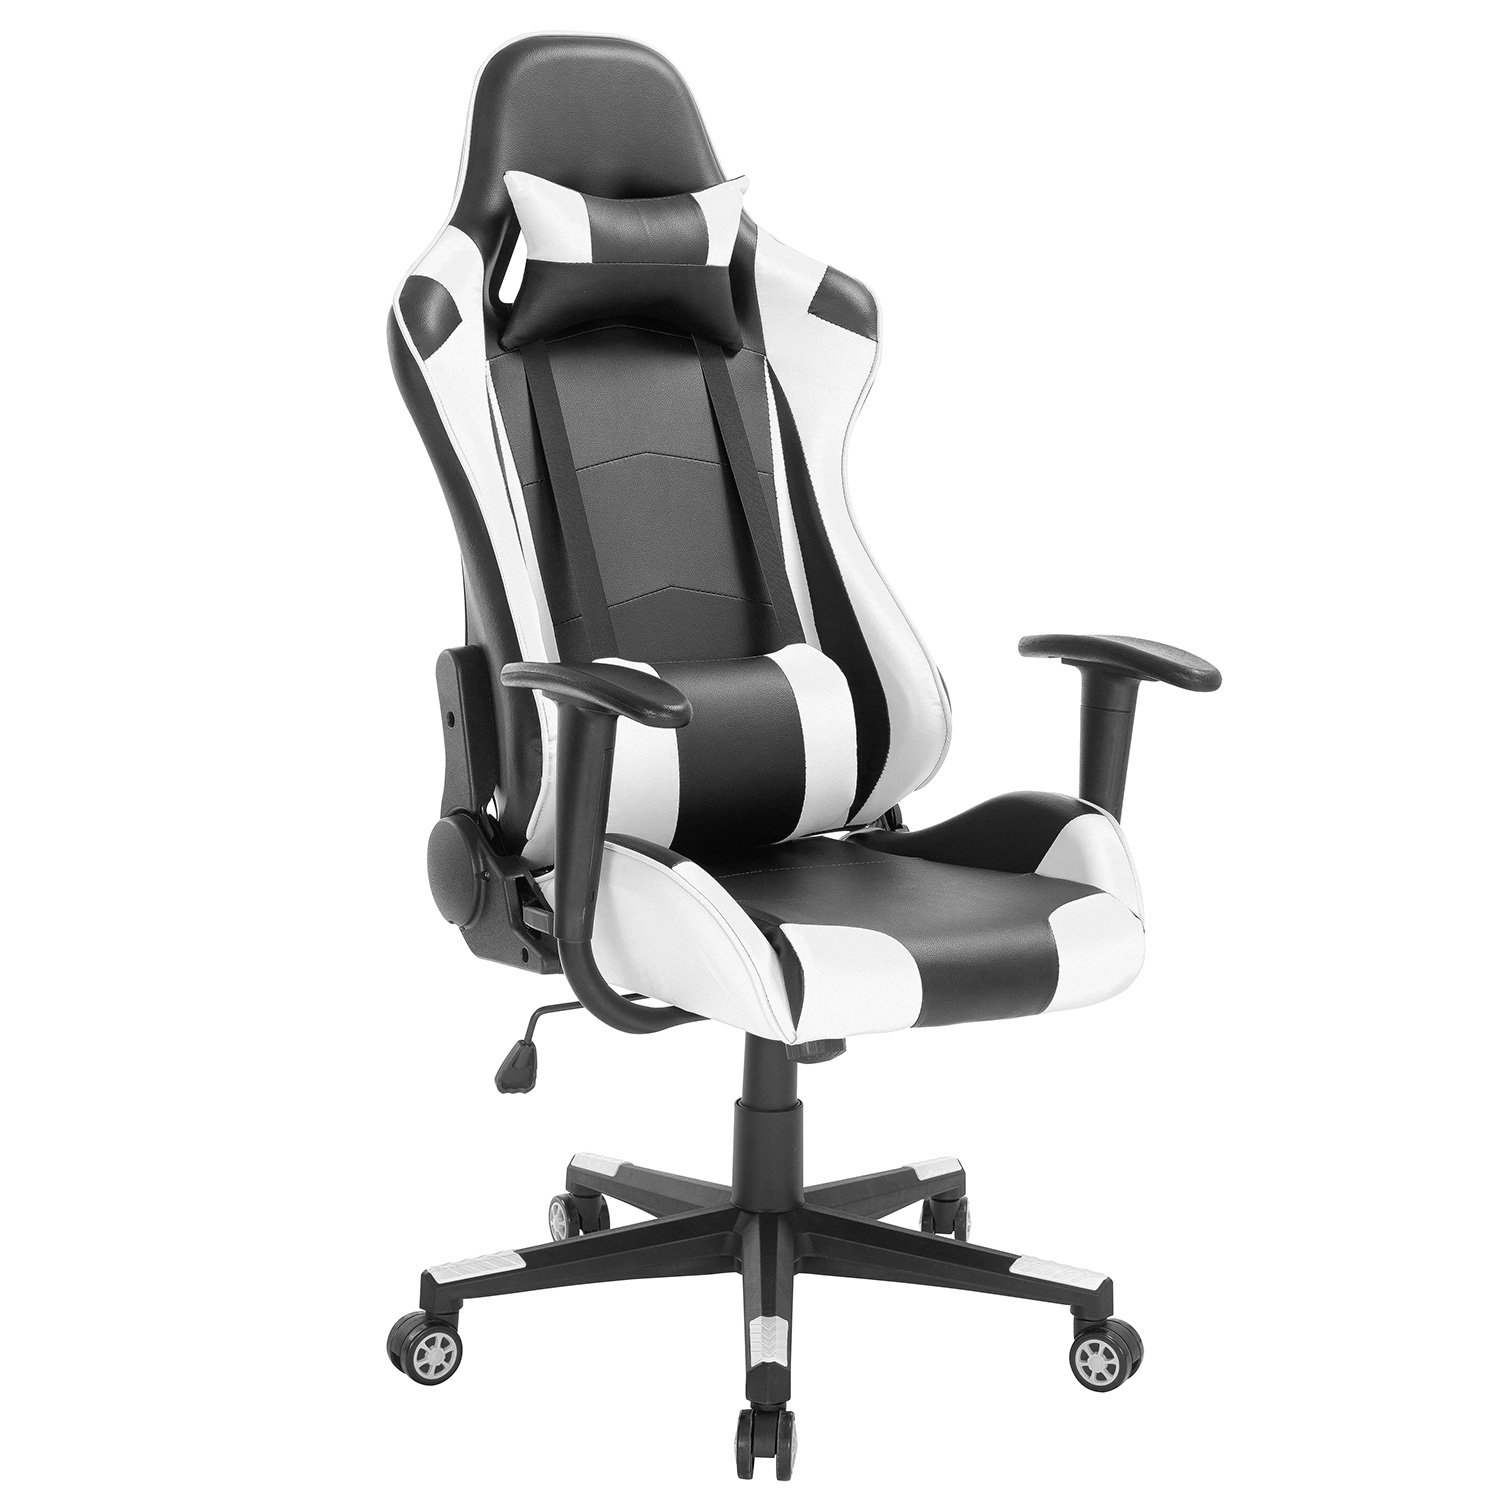 High-Back Swivel Gaming Chair Black White with Lumbar Support Headrest Racing Style Ergonomic Office Desk Chair by Modern-depo